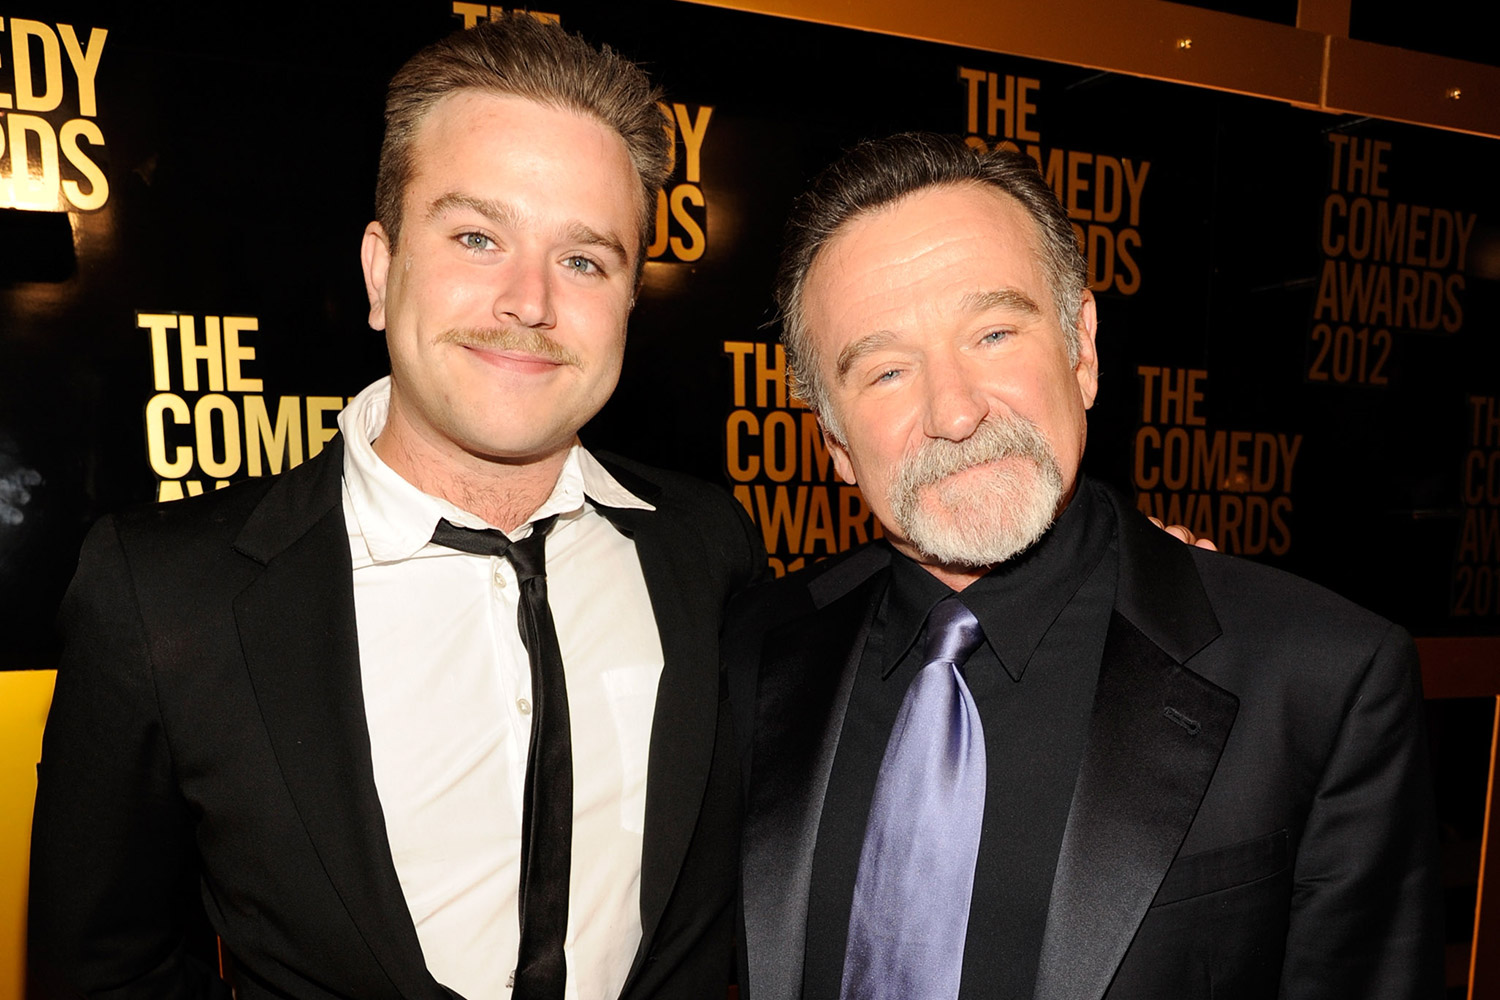 Zak and Robin Williams